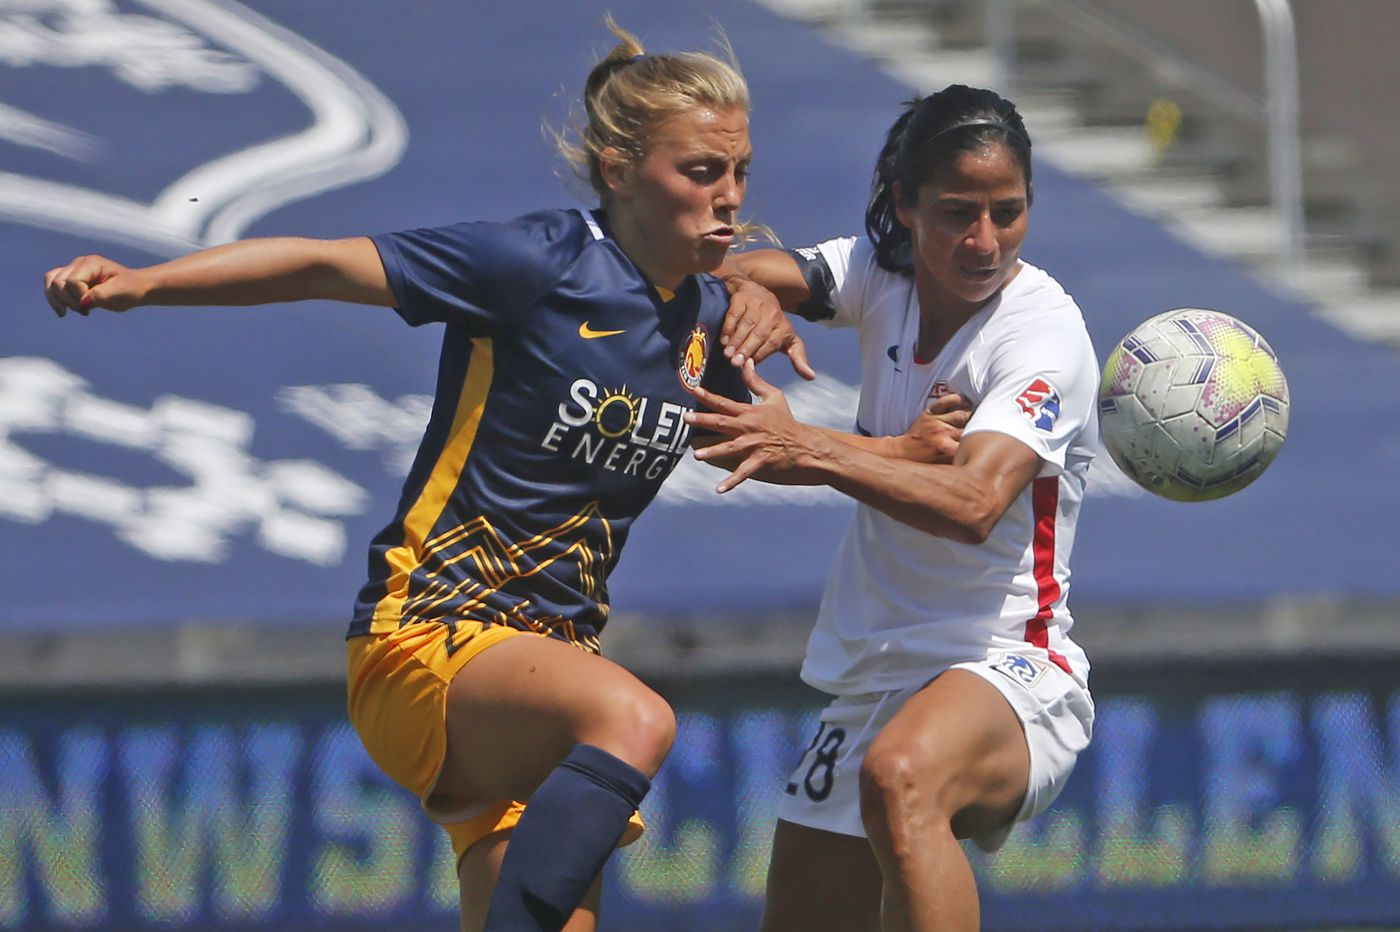 NWSL Challenge Cup: Sky Blue FC, OL Reign get first wins in tournament